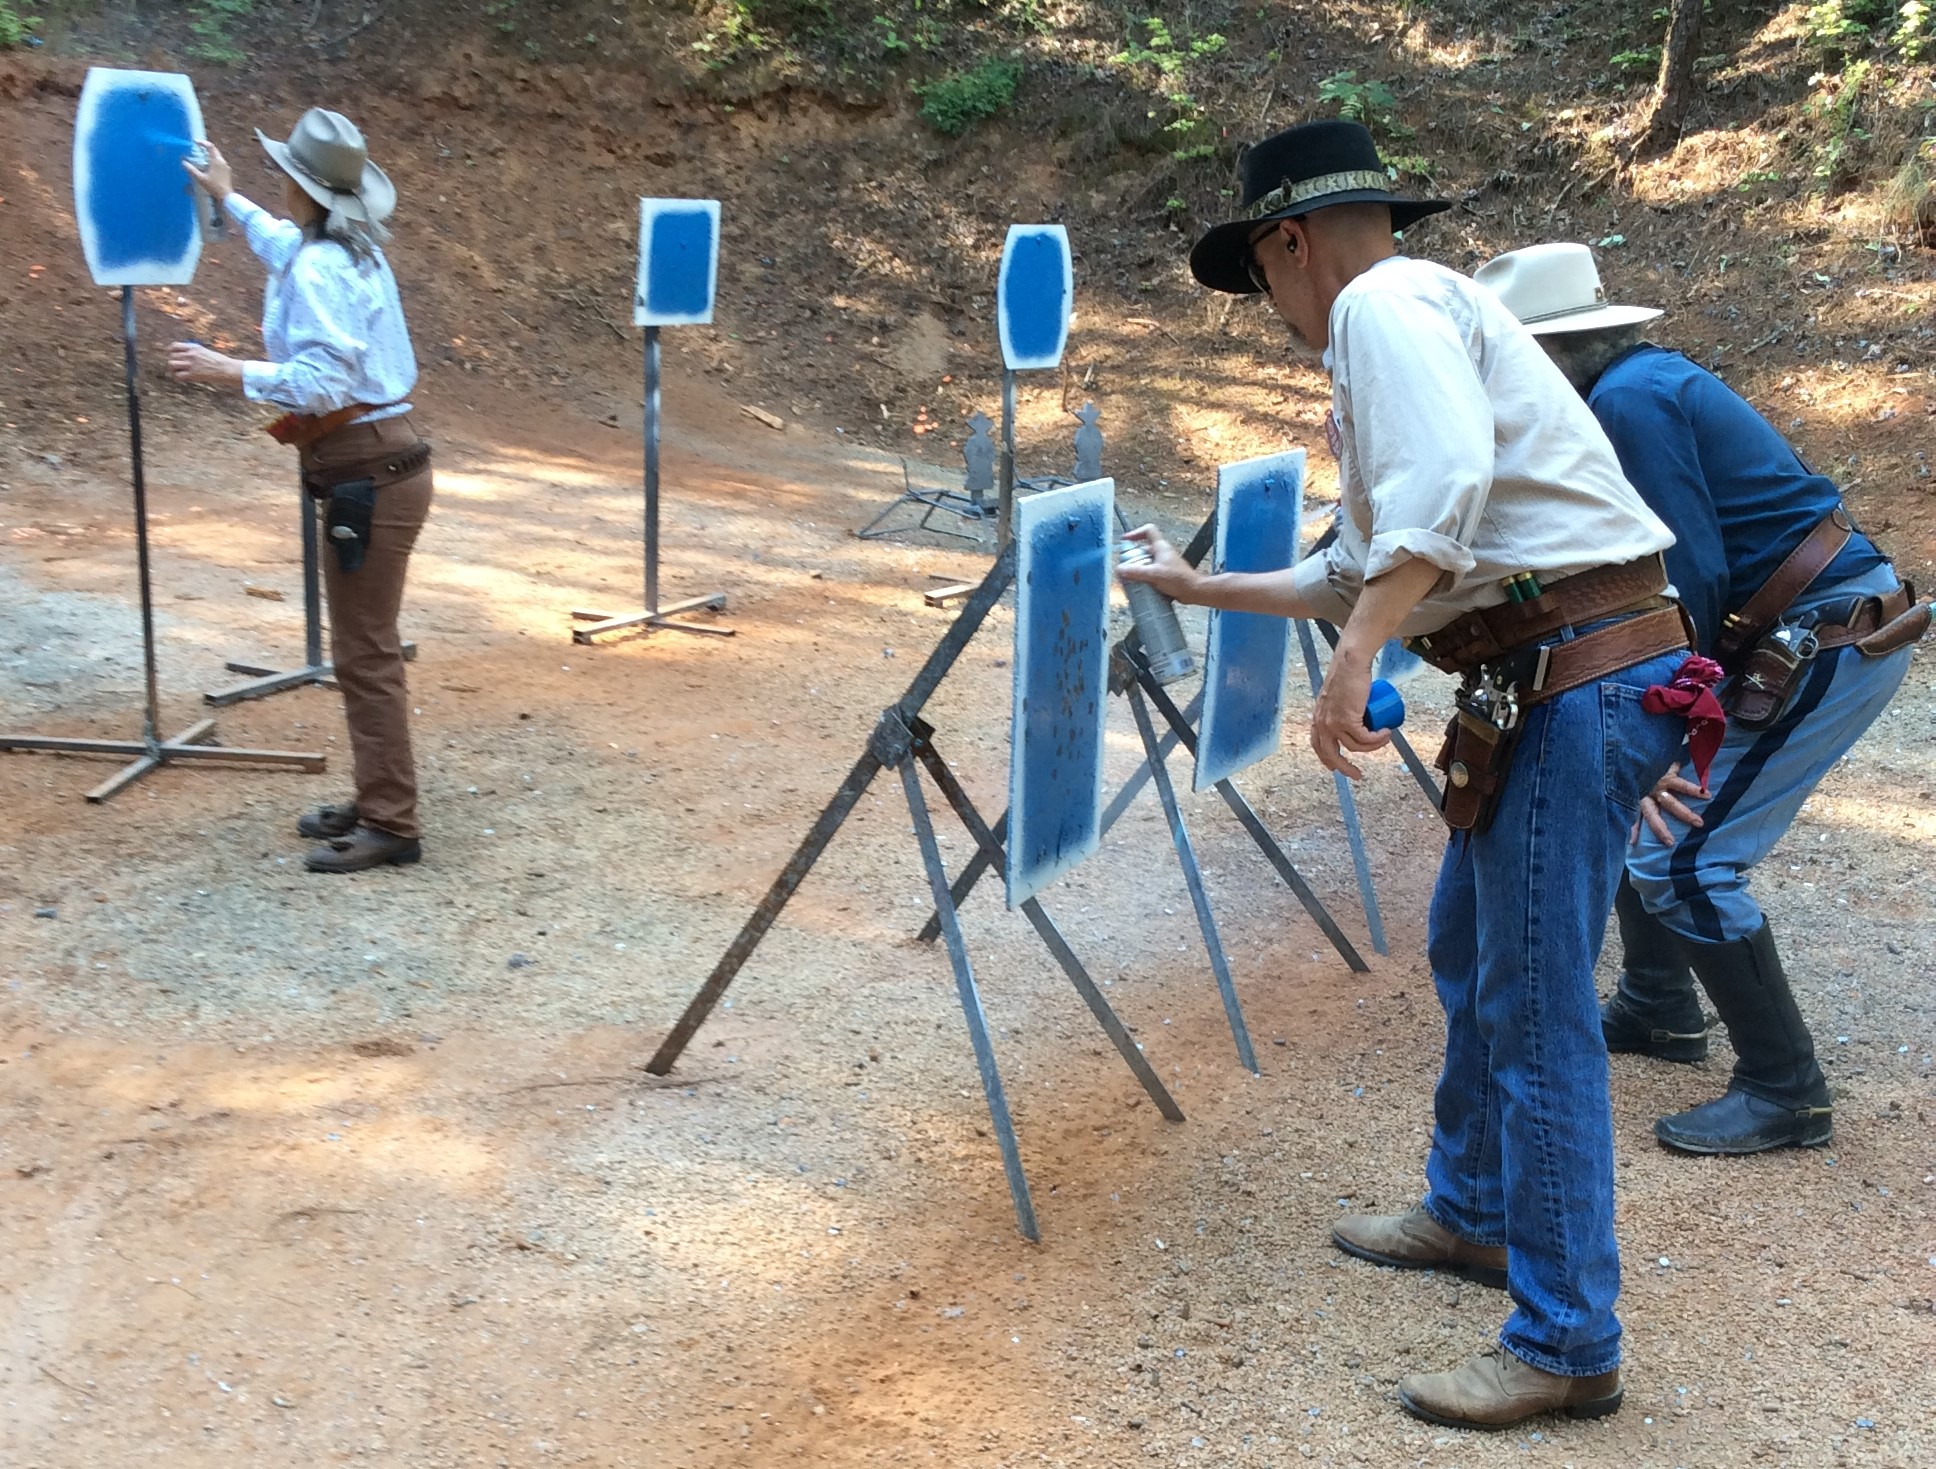 Painting targets for the next posse